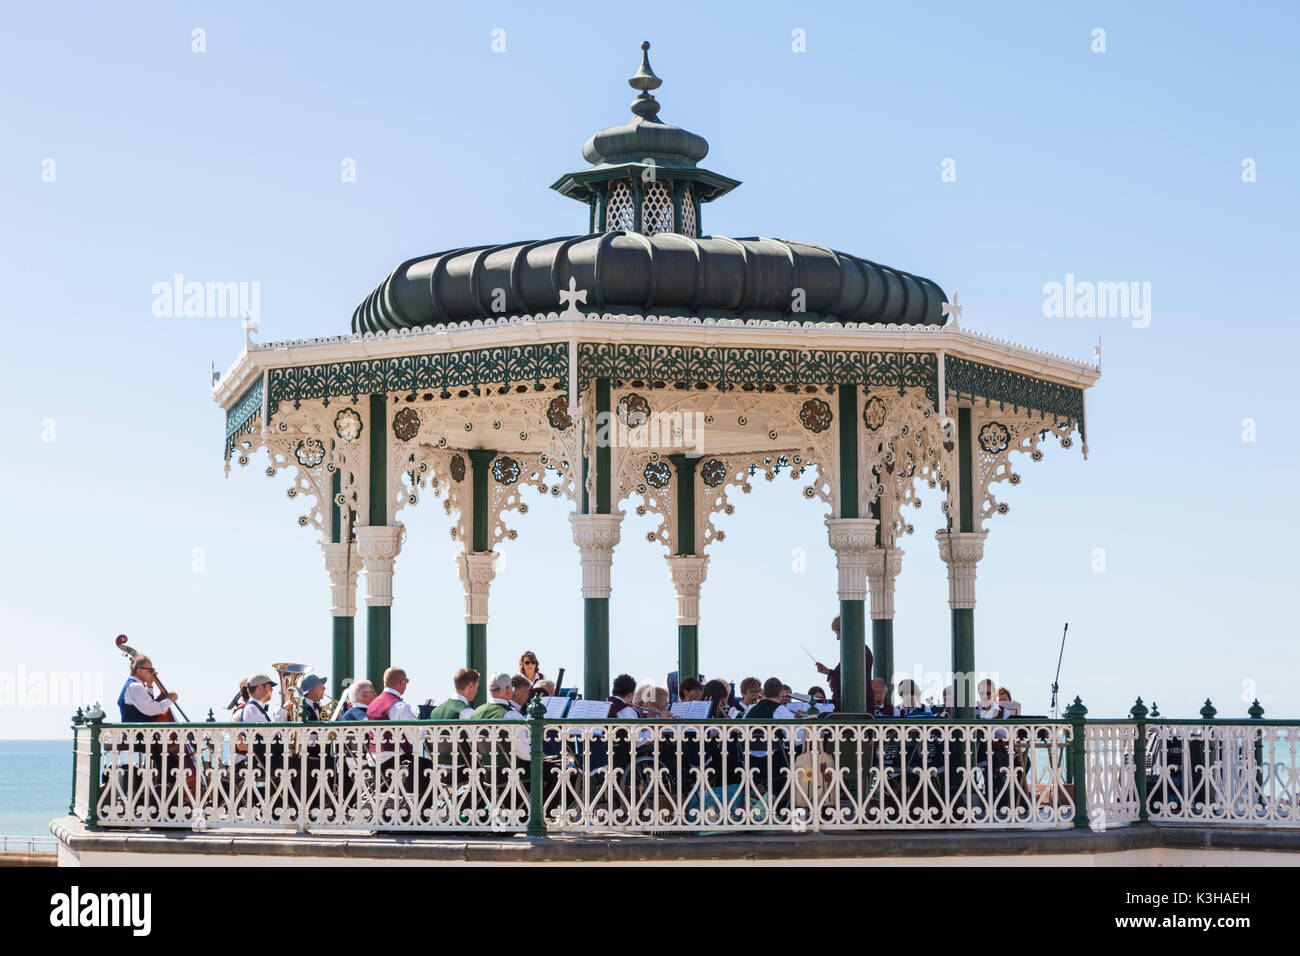 England, East Sussex, Brighton, Seafront Bandstand - Stock Image